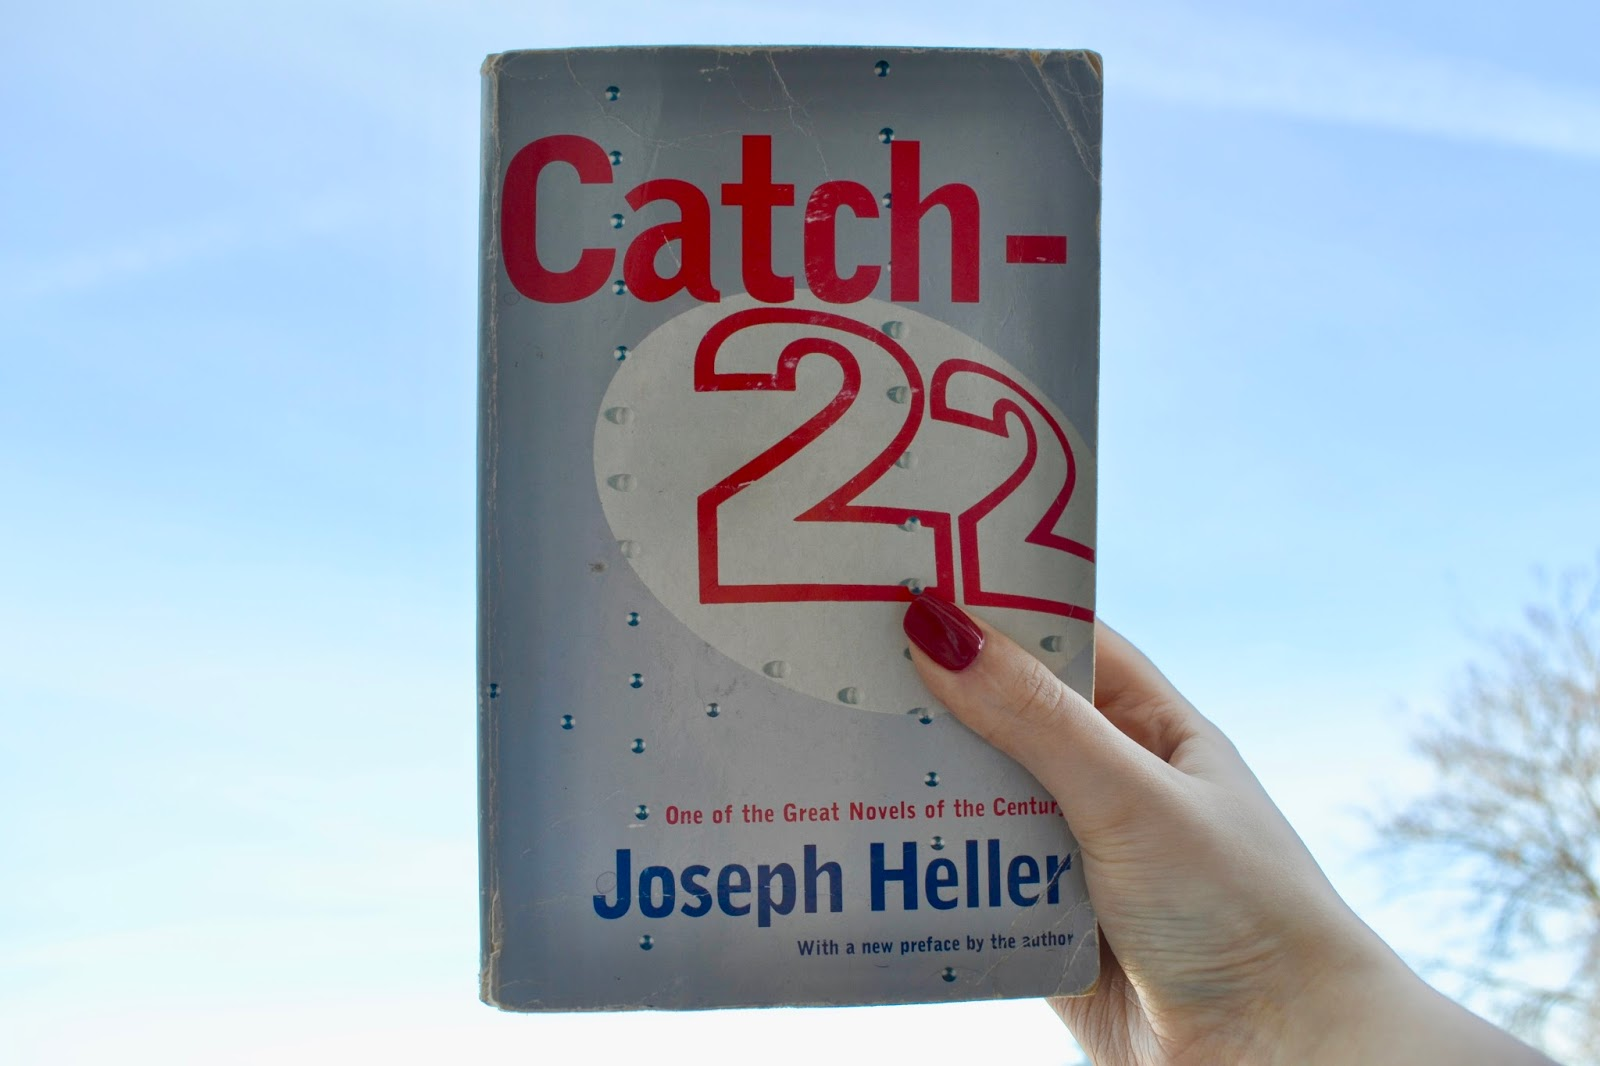 a summary of catch 22 by joseph heller Joseph heller - catch - 22 yossarian thought he was dead they put the texan in a bed in the middle of the ward, and it wasn't long bef ore he donated his views.